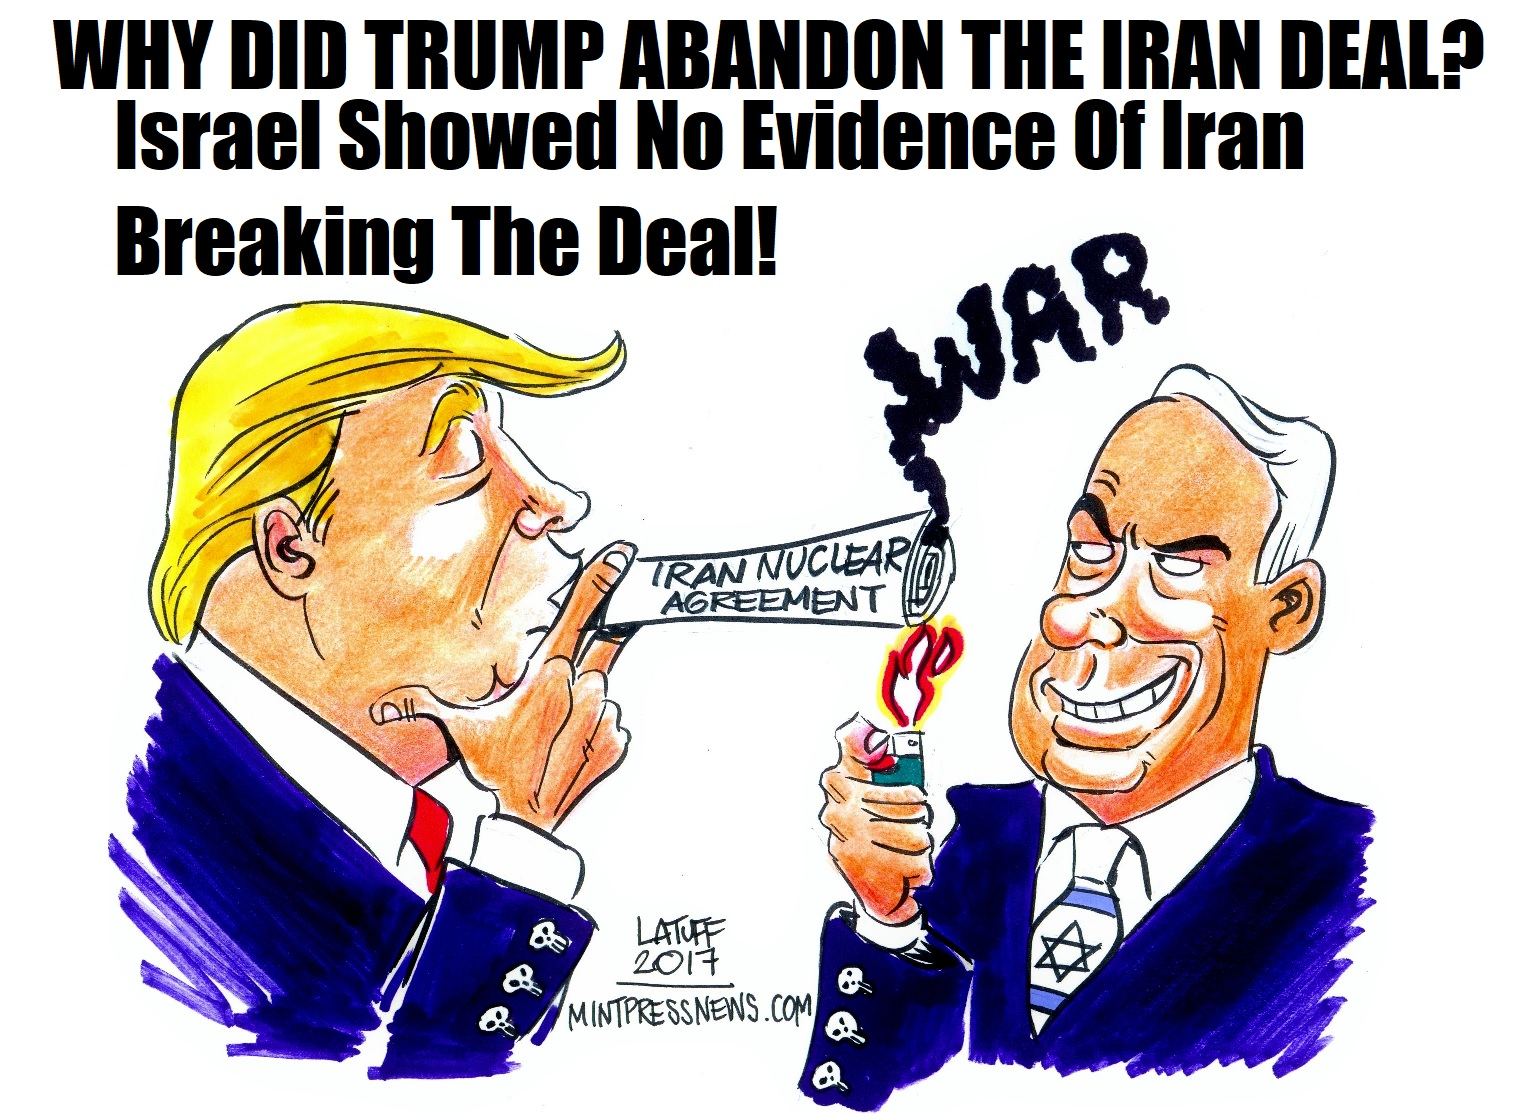 Was it truly a bad deal, or was there influence coming from Israel?